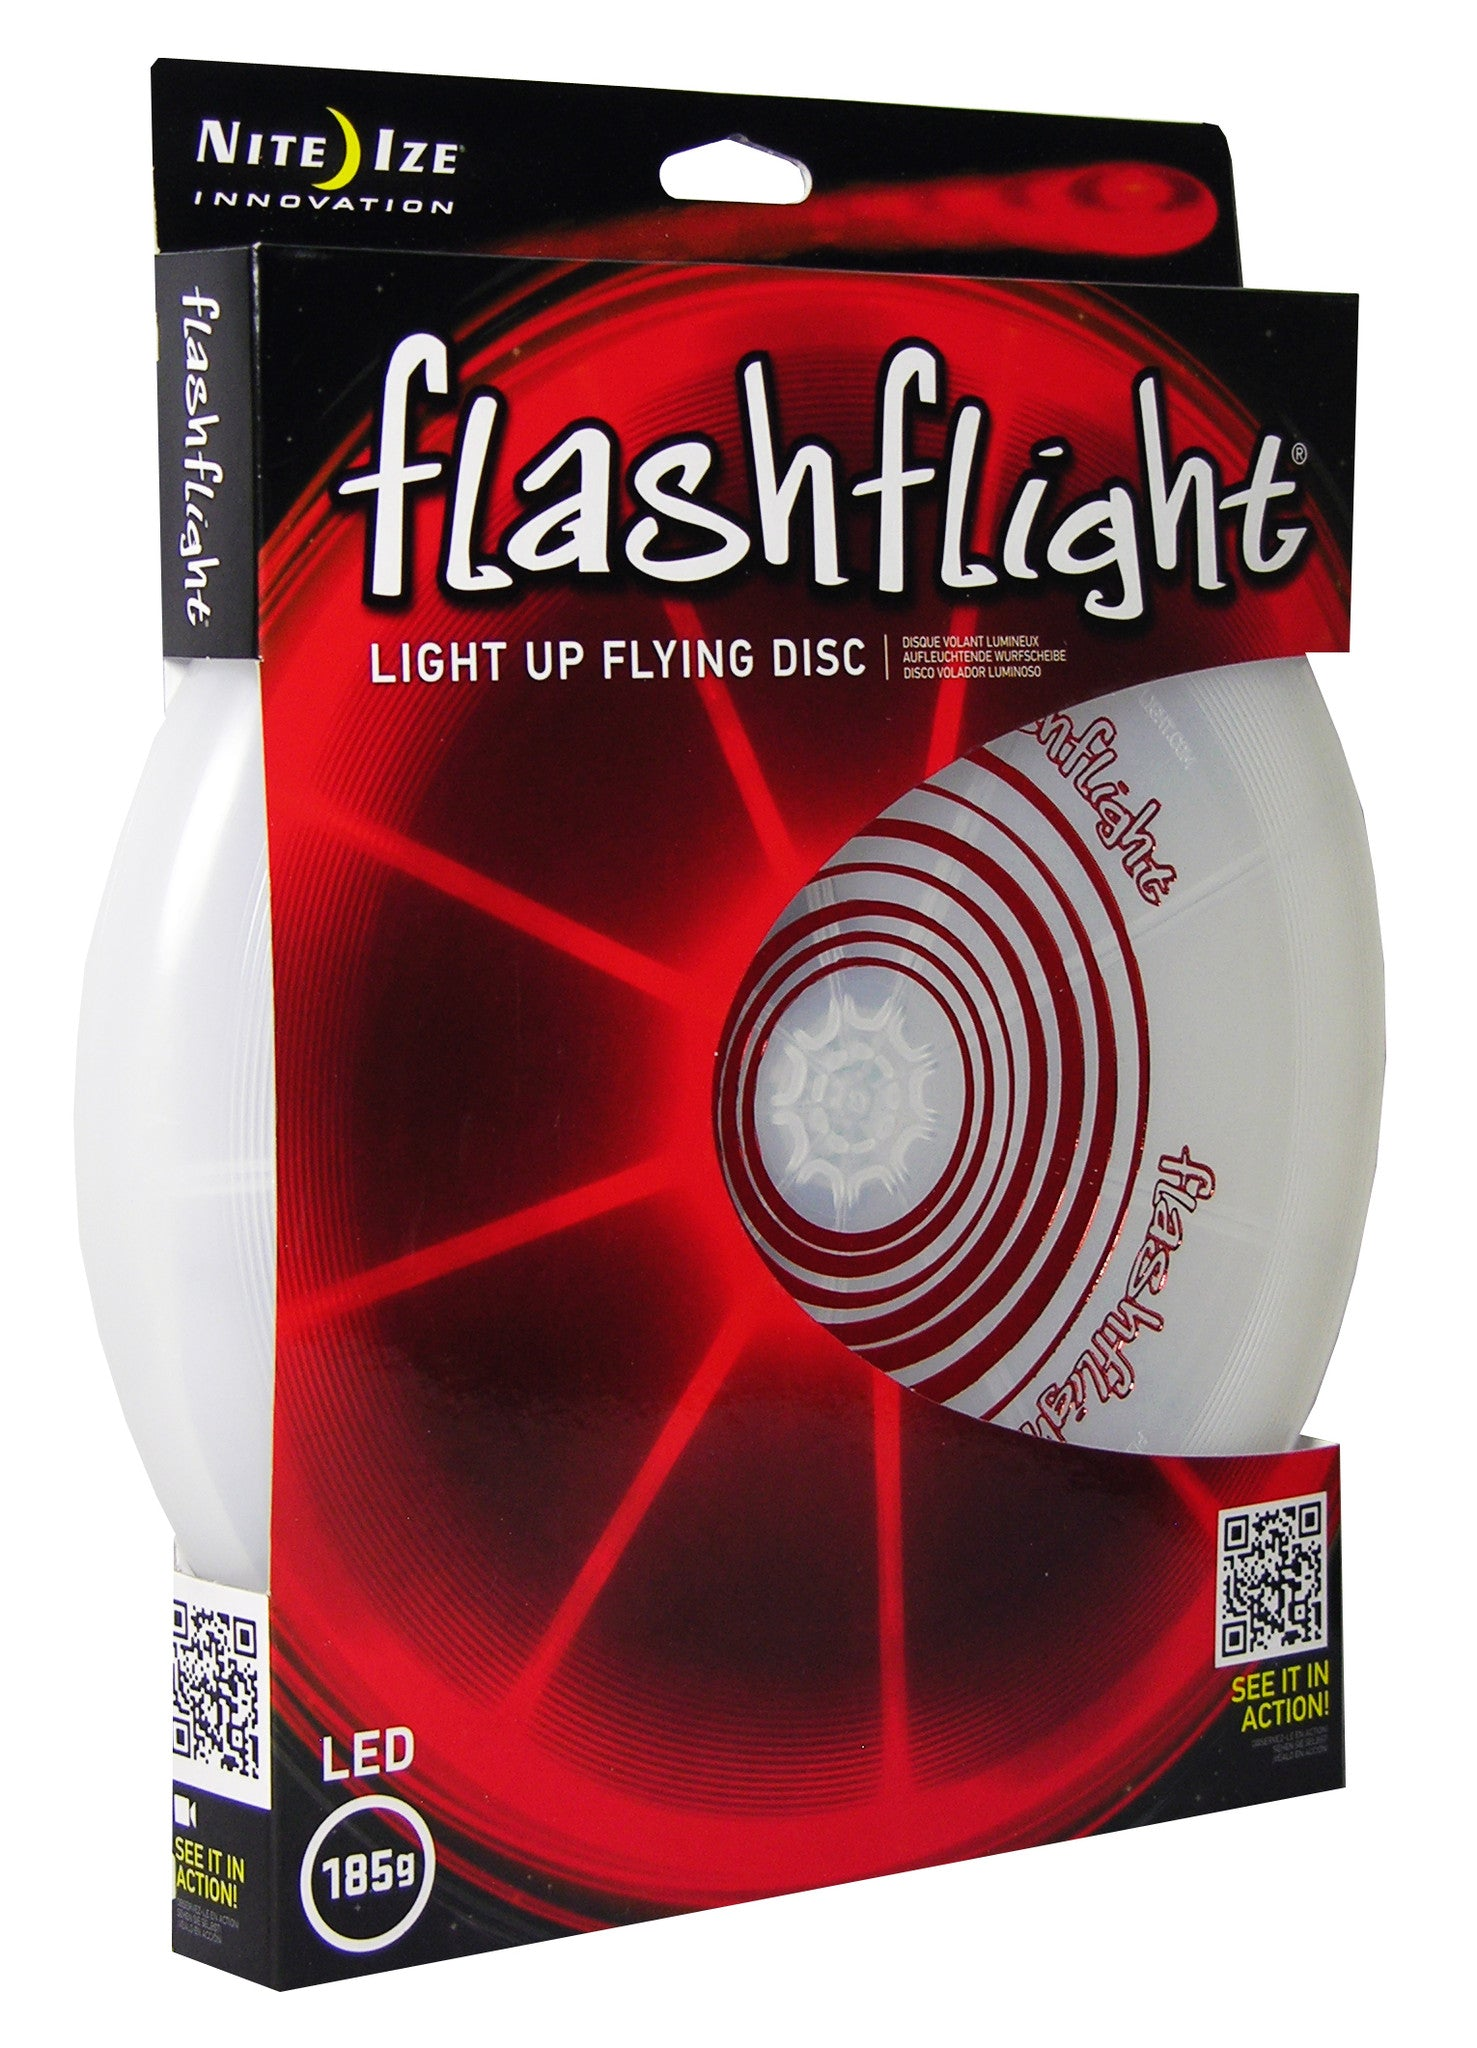 Flashflight LED Light-Up Flying Disc - Flashflight.com - 6